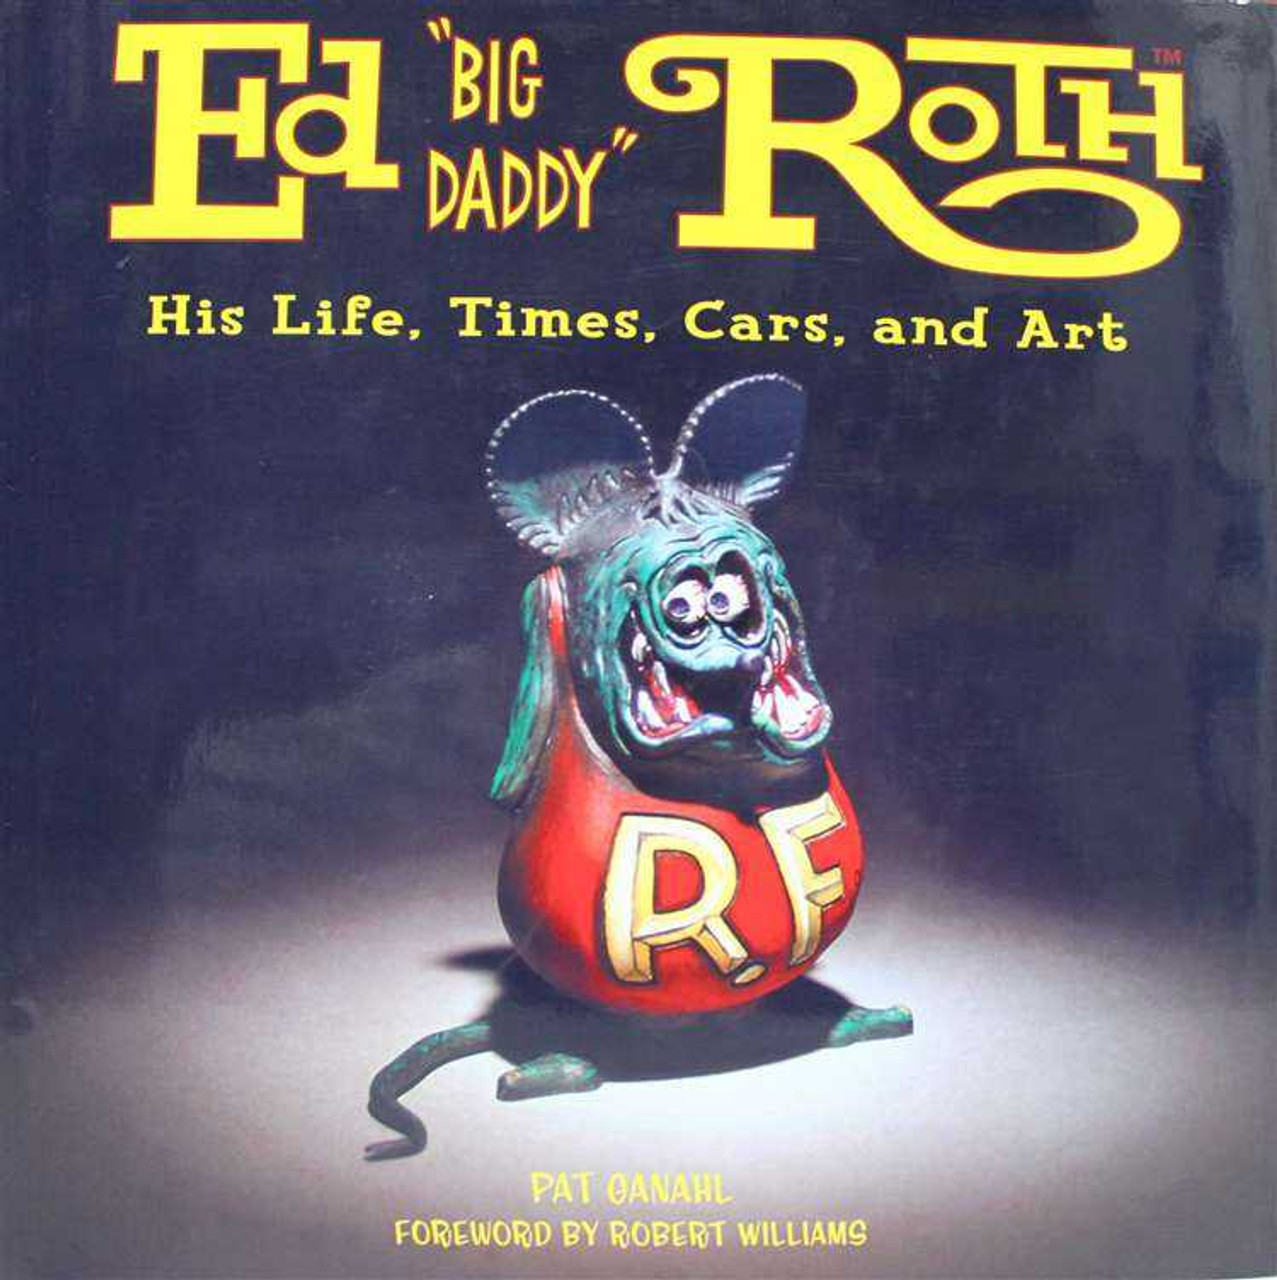 Ed Big Daddy Roth His Life Times Cars And Art